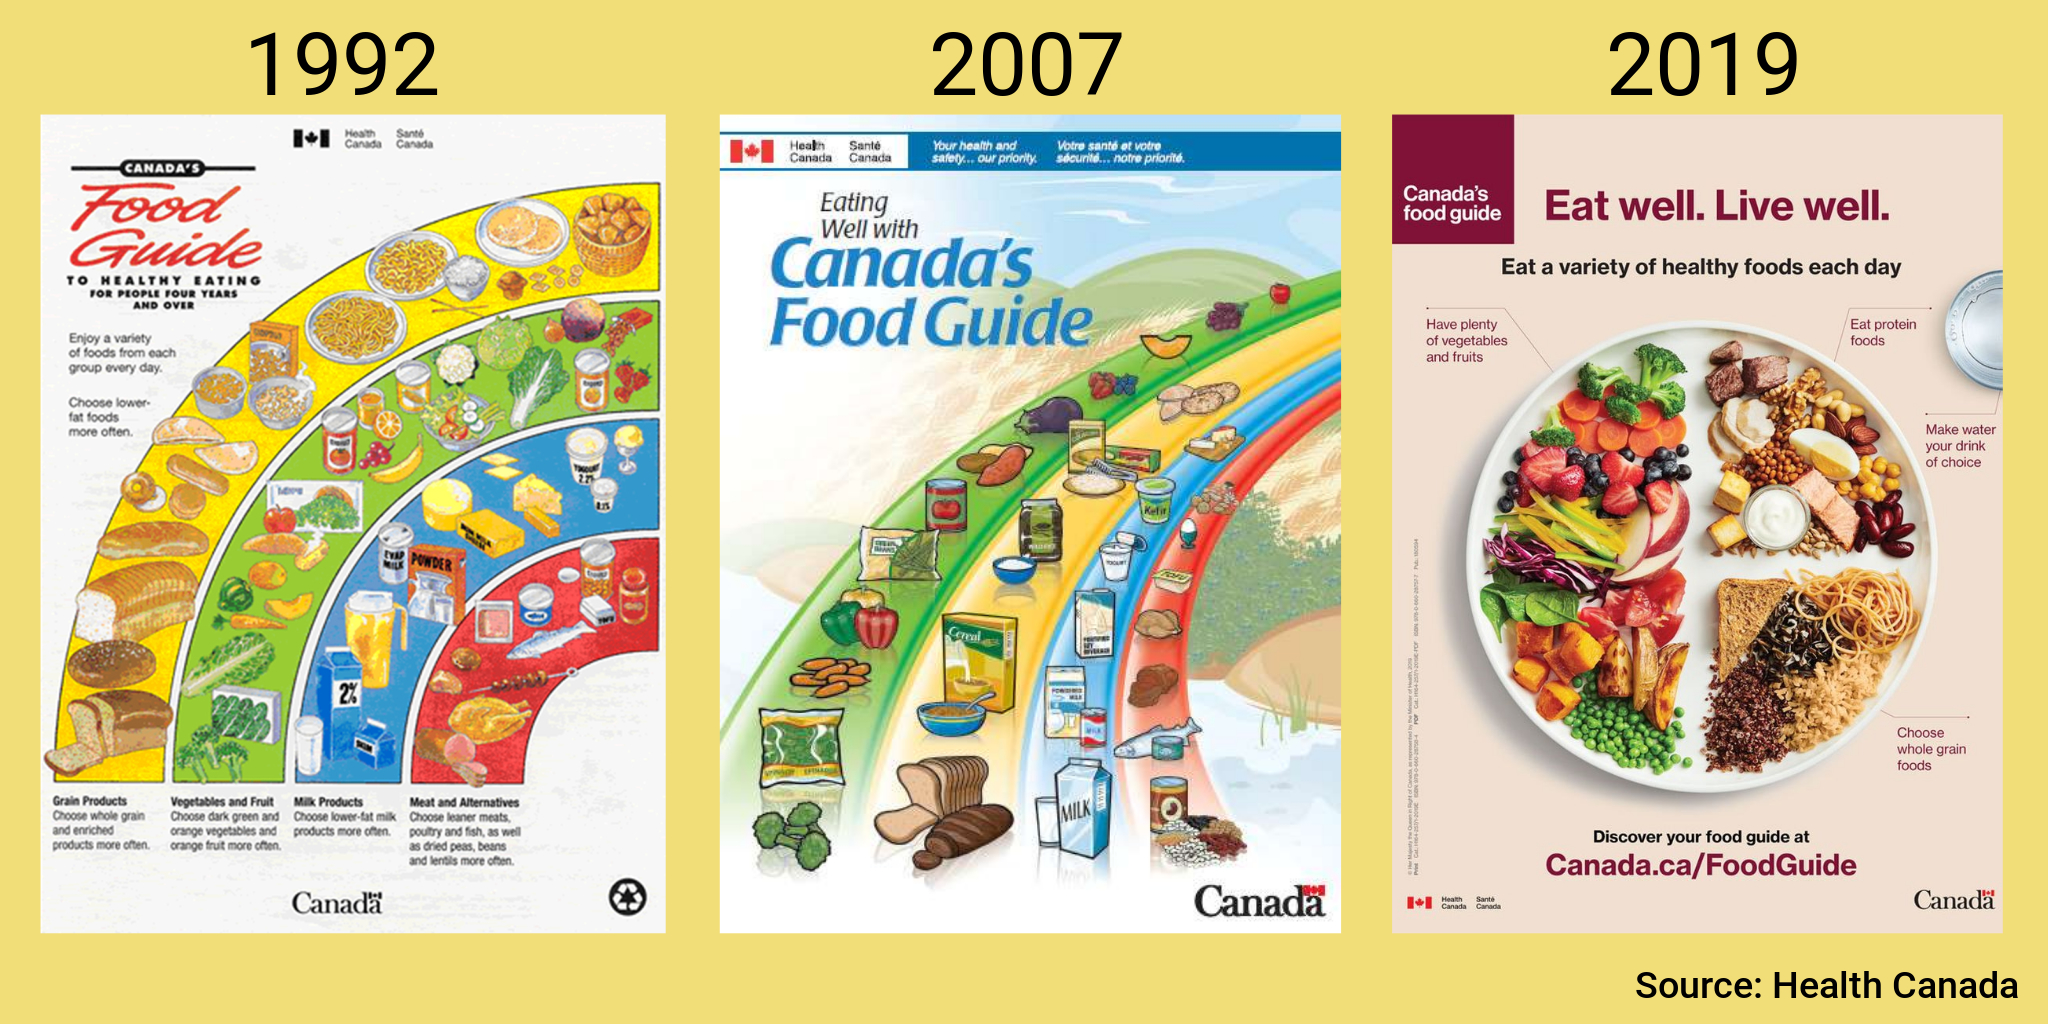 Canada Food Guide history